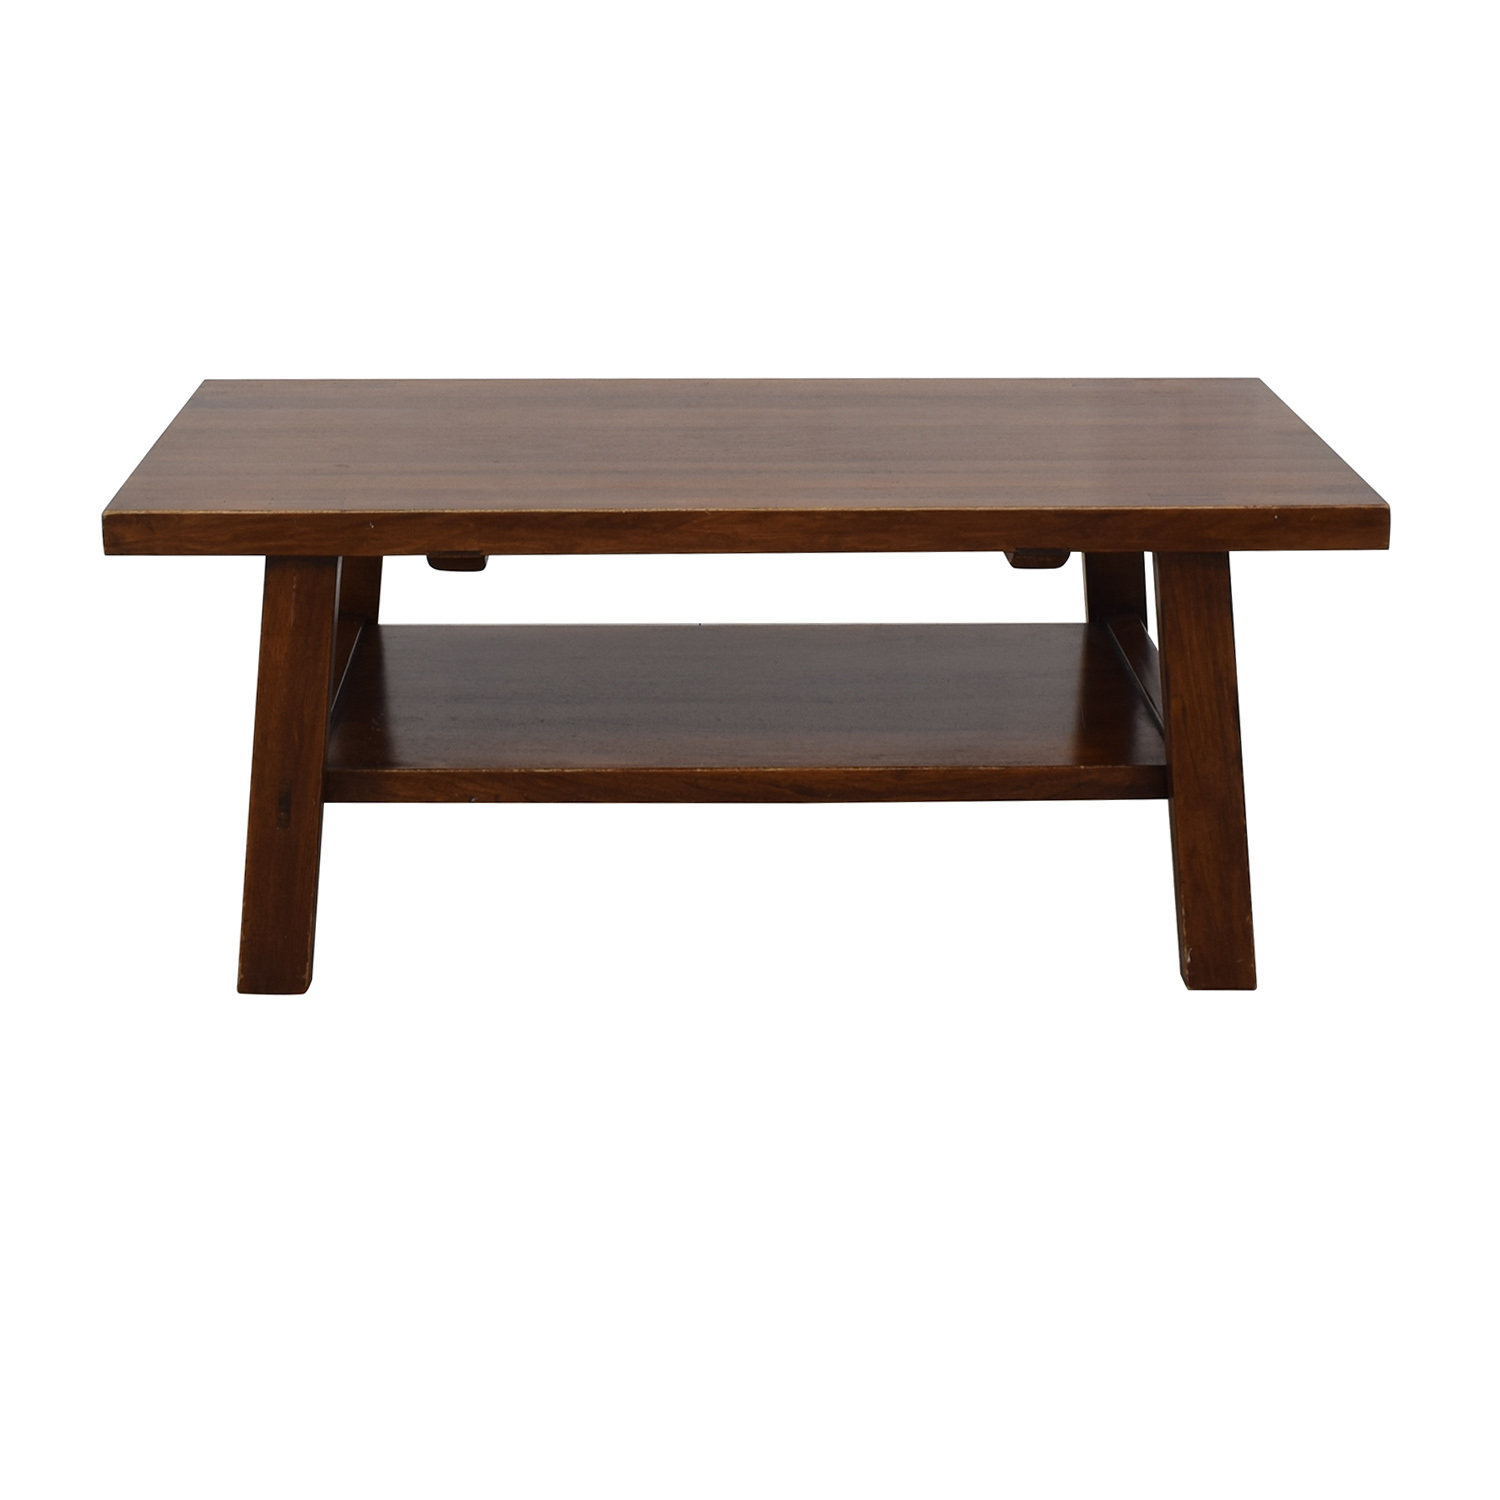 Two Tiered Rectangular Coffee Table Coffee Tables